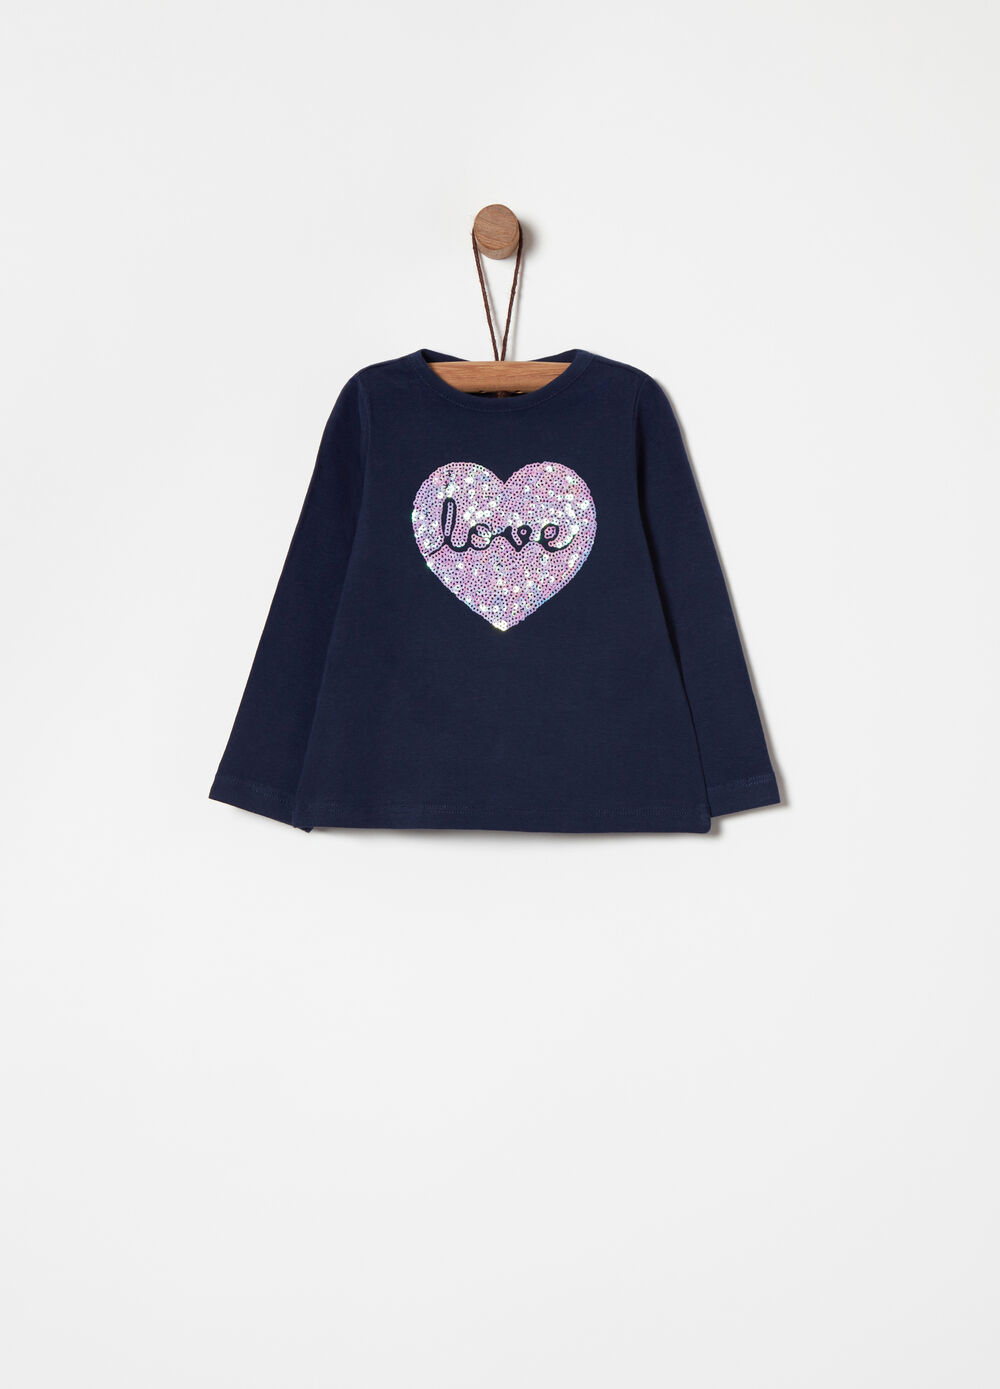 T-shirt with sequinned appliqués